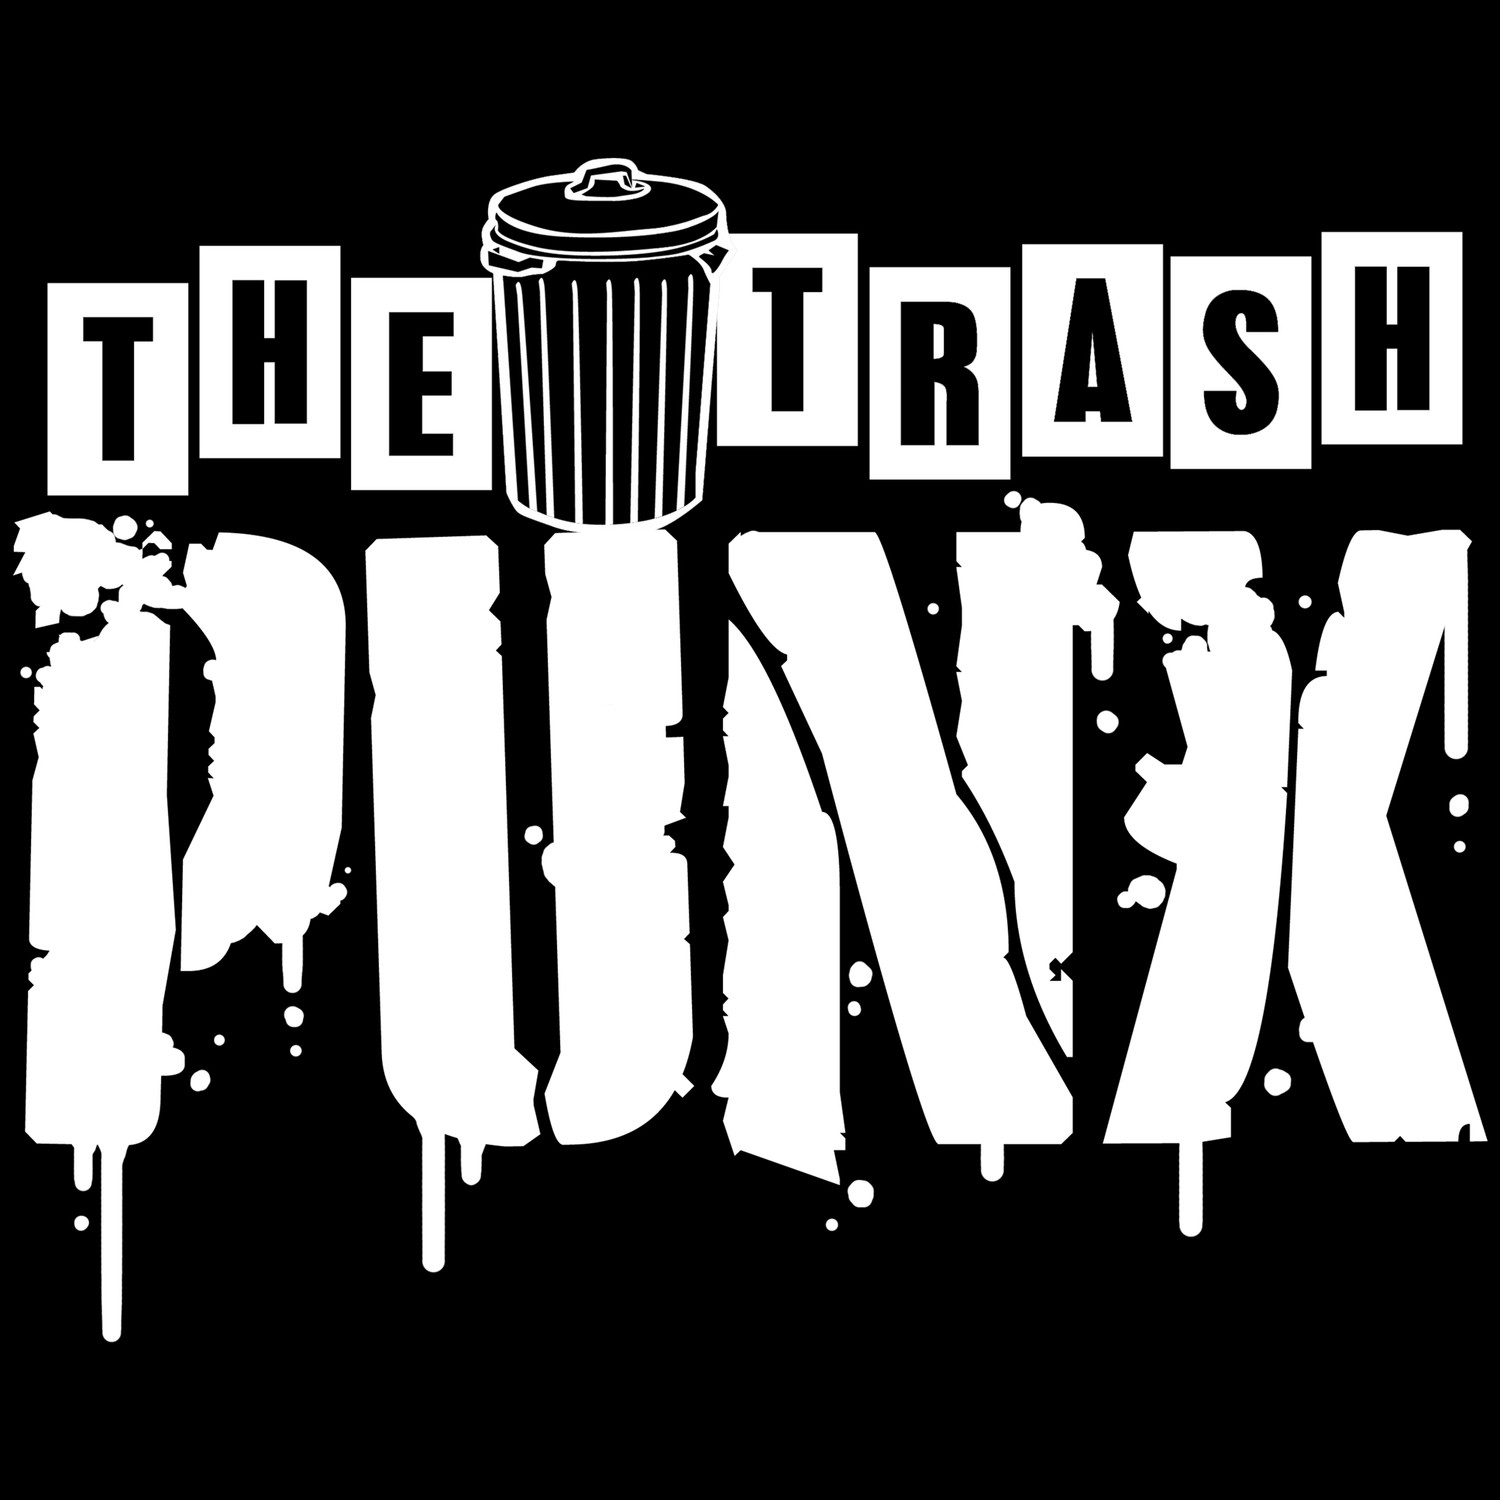 The Trash Punx